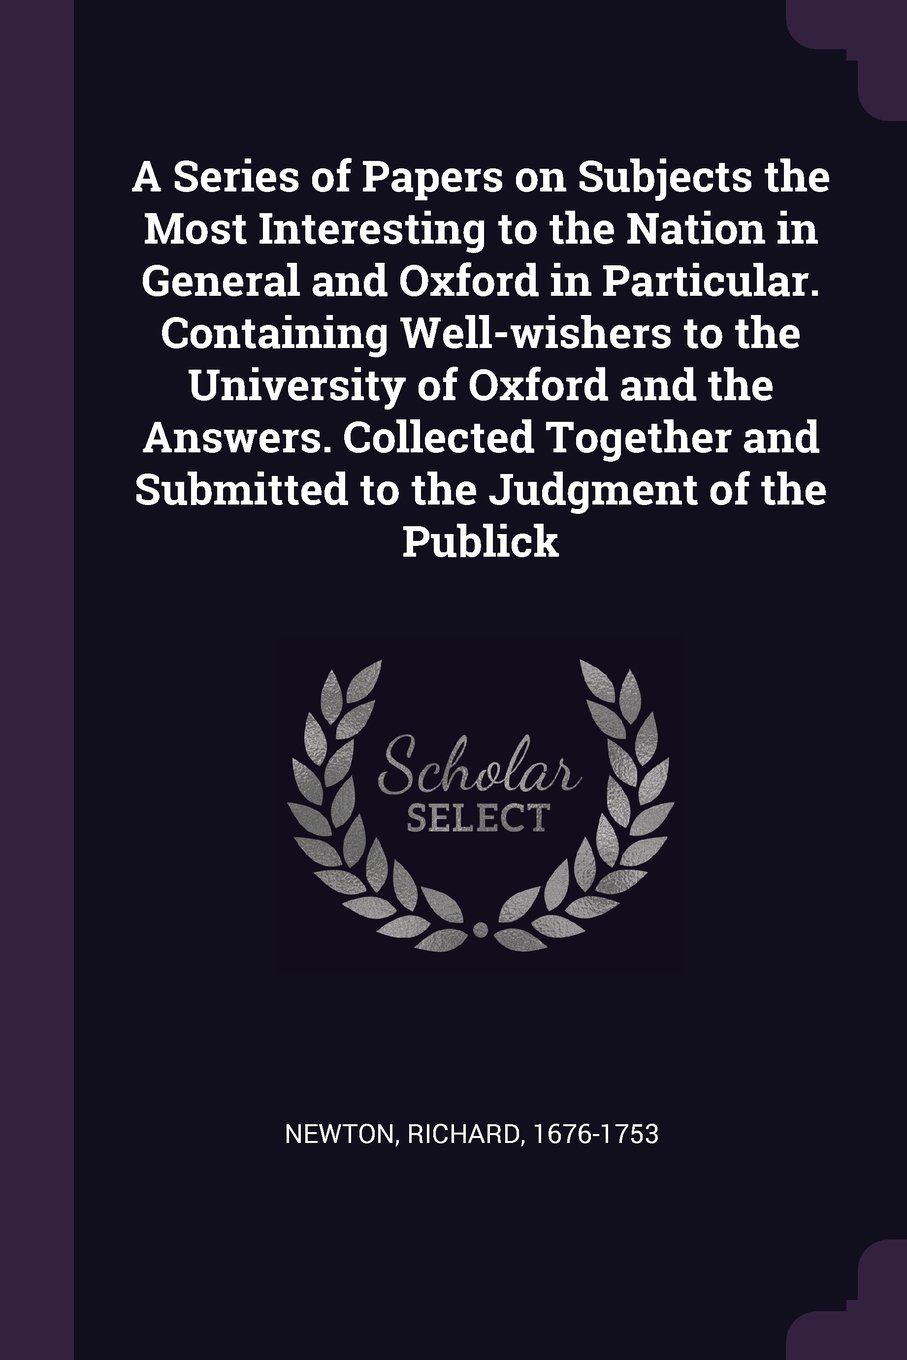 A Series of Papers on Subjects the Most Interesting to the Nation in General and Oxford in Particular. Containing Well-wishers to the University of ... and Submitted to the Judgment of the Publick pdf epub